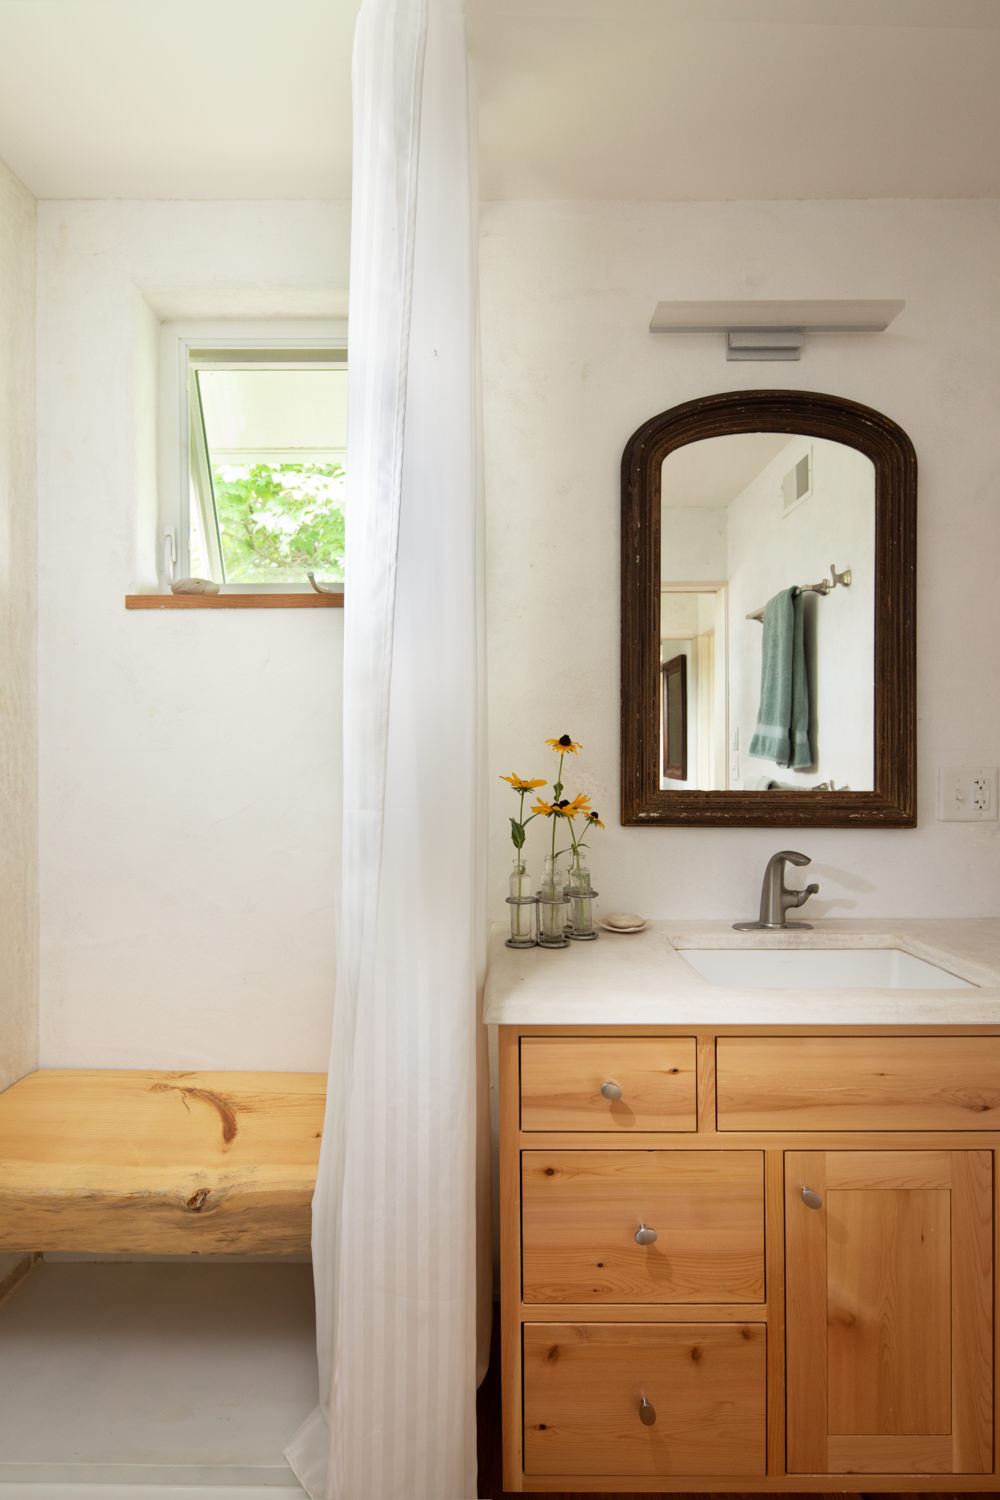 A sustainably retrofitted bathroom with ancient lime plaster walls and tadelakt shower and sink